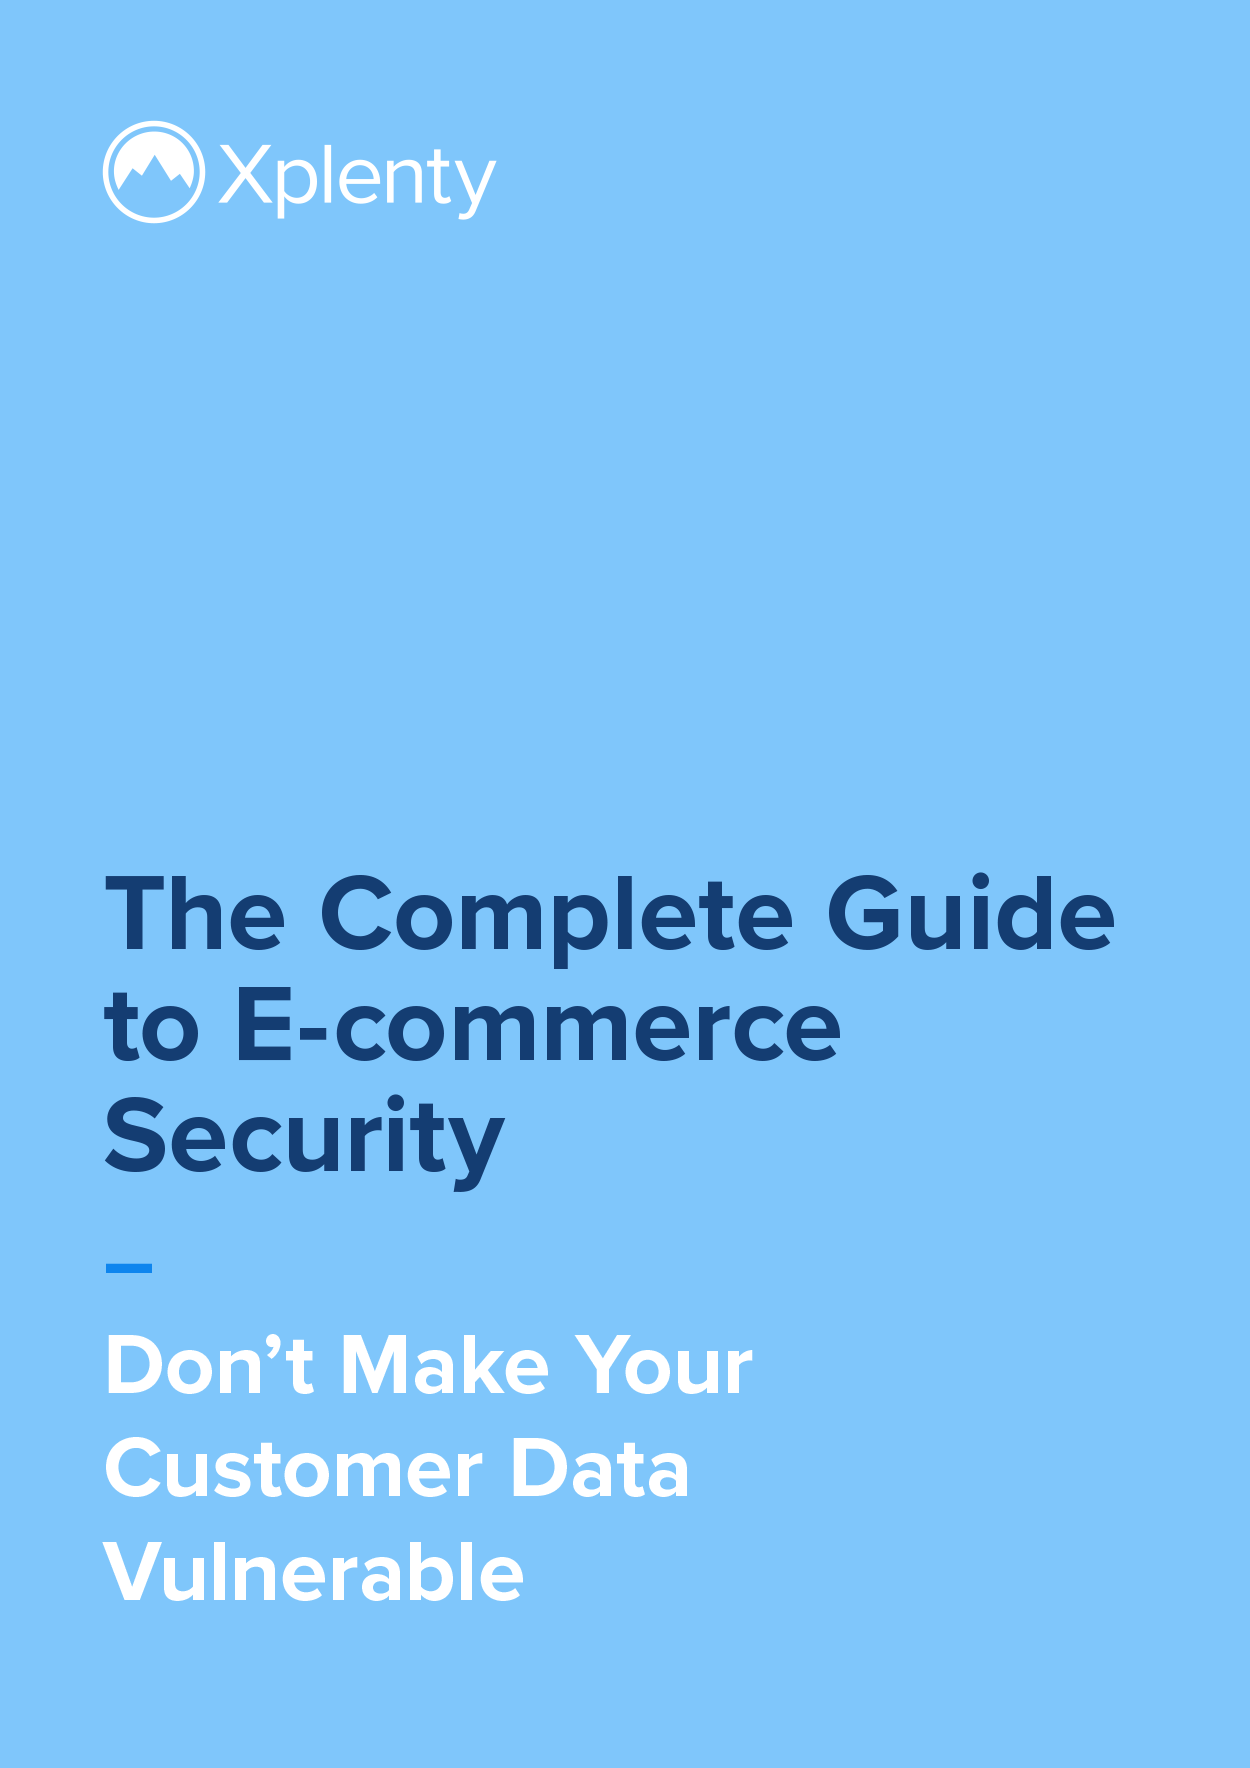 The Complete Guide to E-Commerce Security